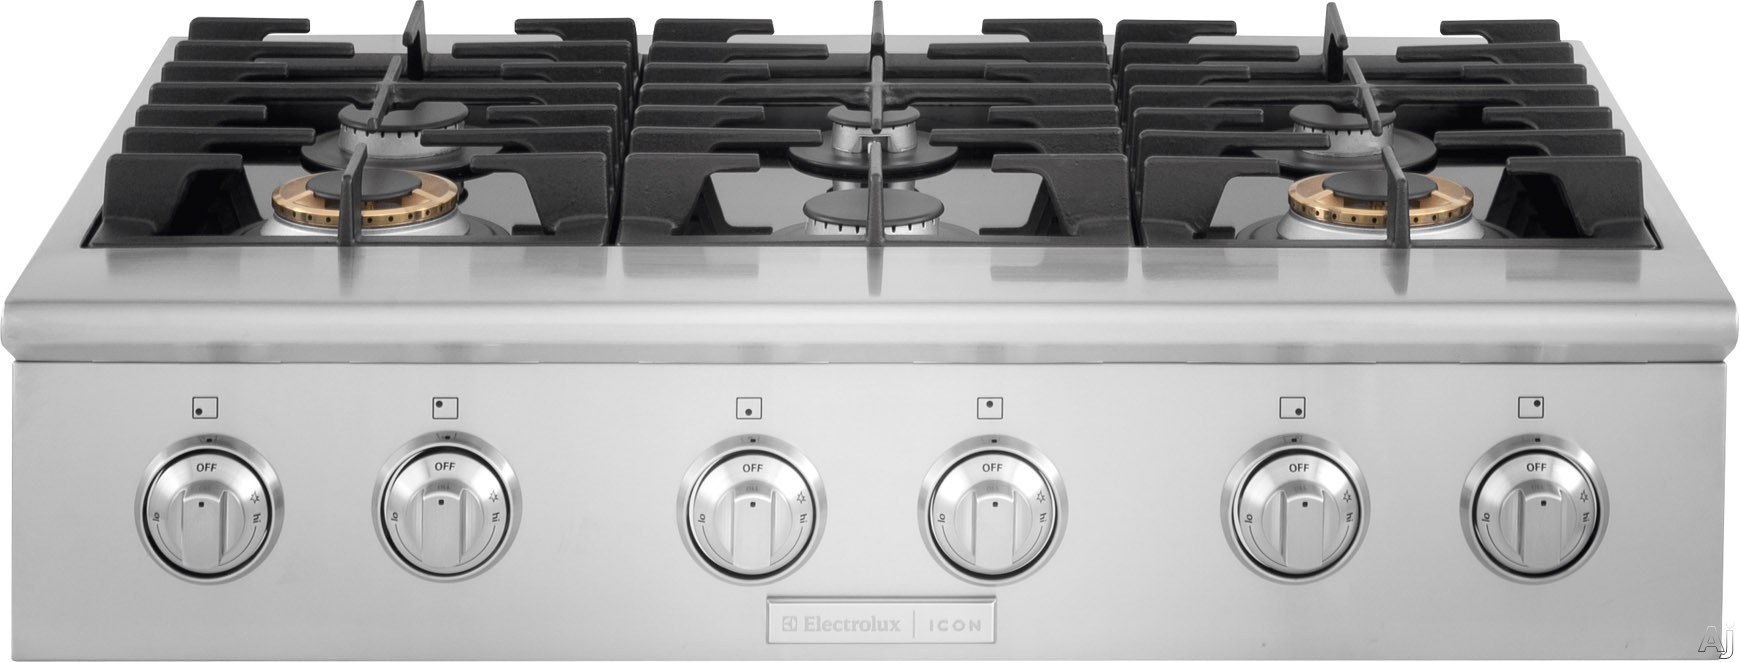 Electrolux E36gc76pps 36 Quot Pro Style Rangetop With 6 Sealed